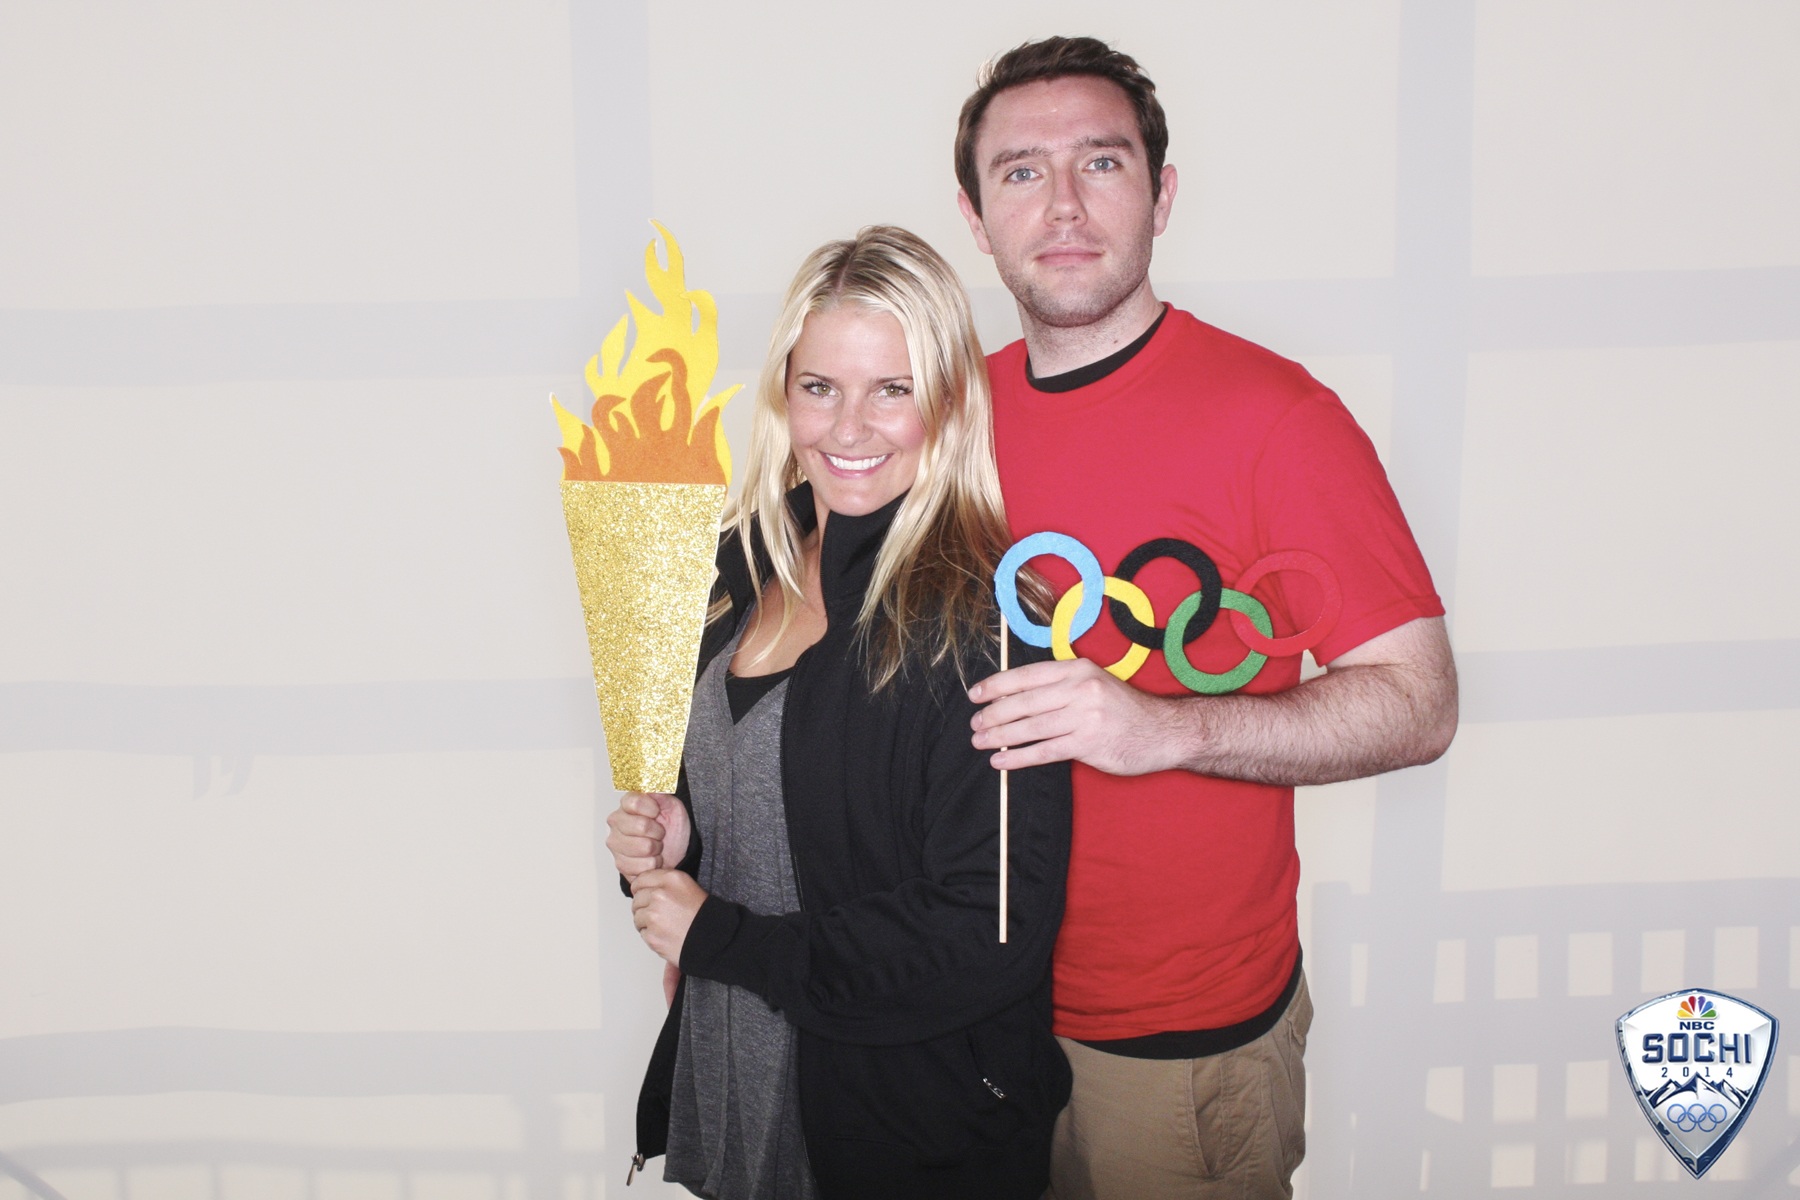 NBC Winter Olympics torch